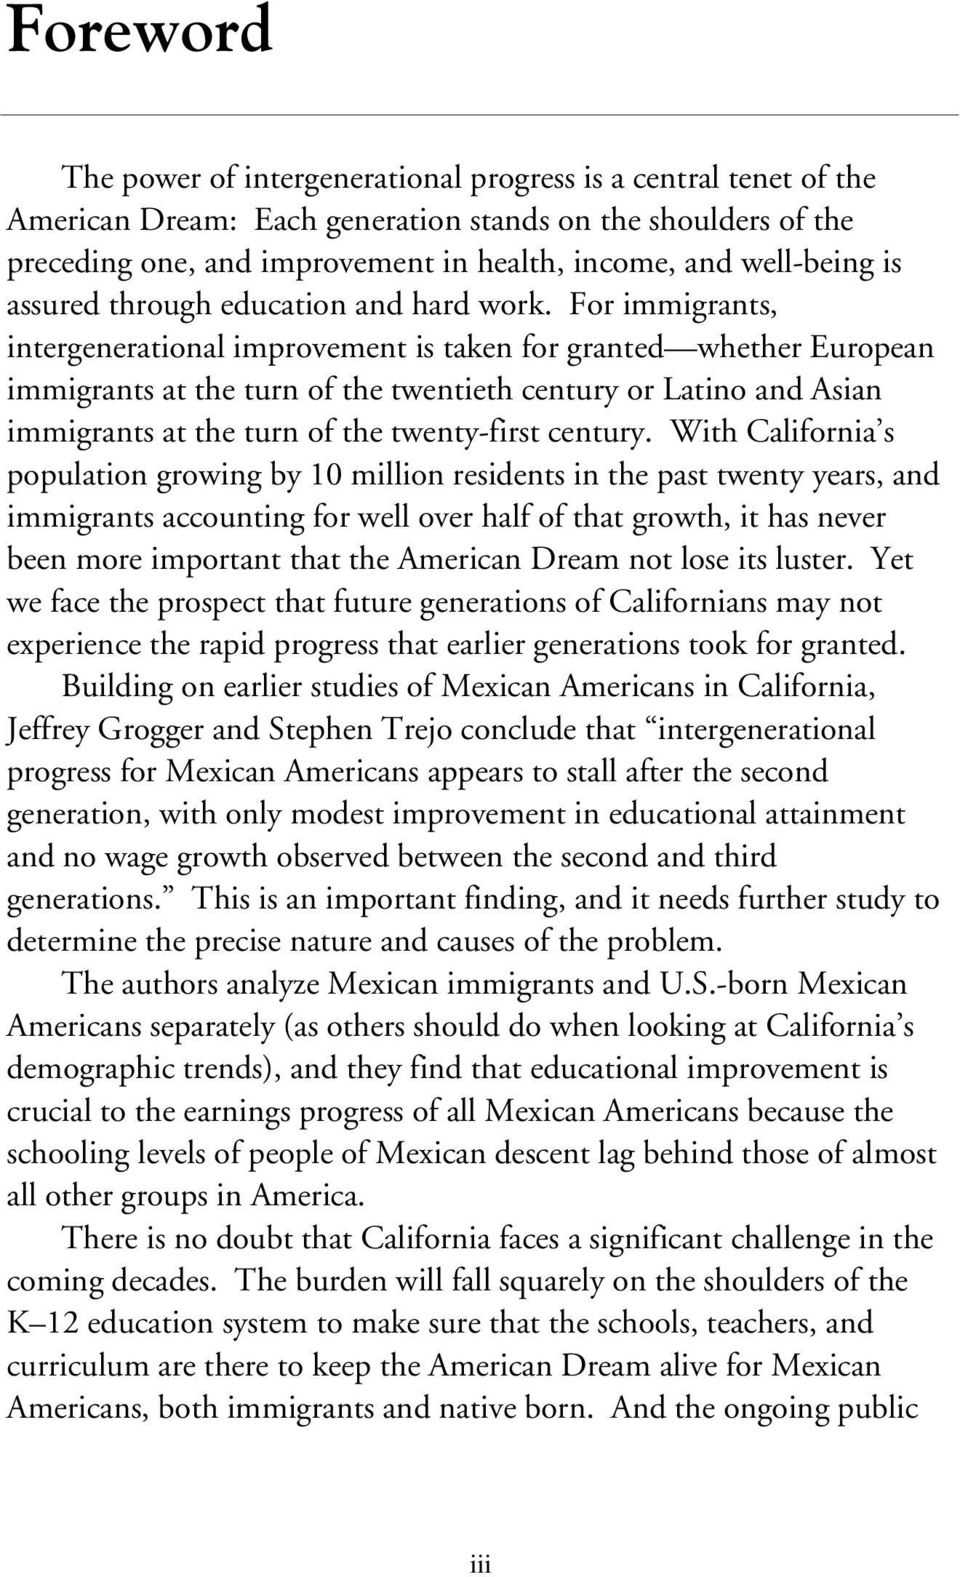 For immigrants, intergenerational improvement is taken for granted whether European immigrants at the turn of the twentieth century or Latino and Asian immigrants at the turn of the twenty-first